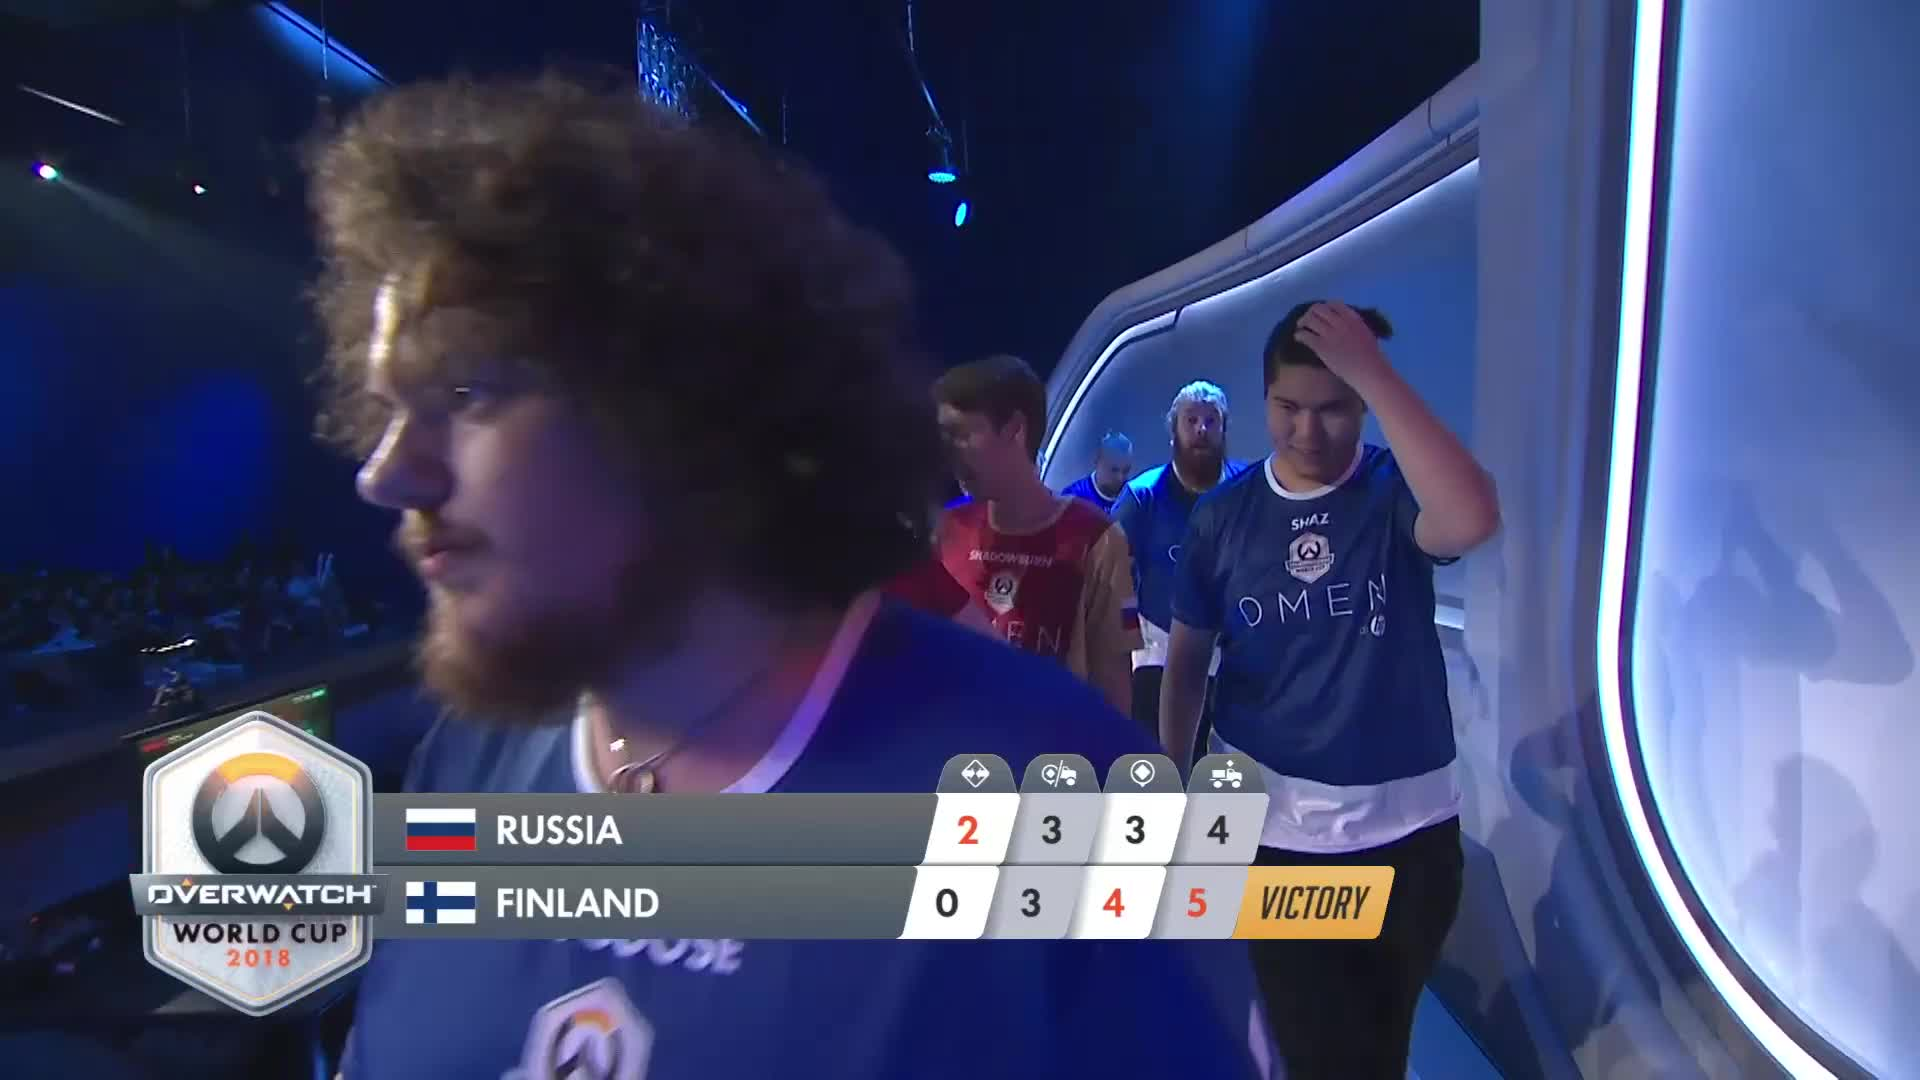 VICTORY - FINLAND GIFs